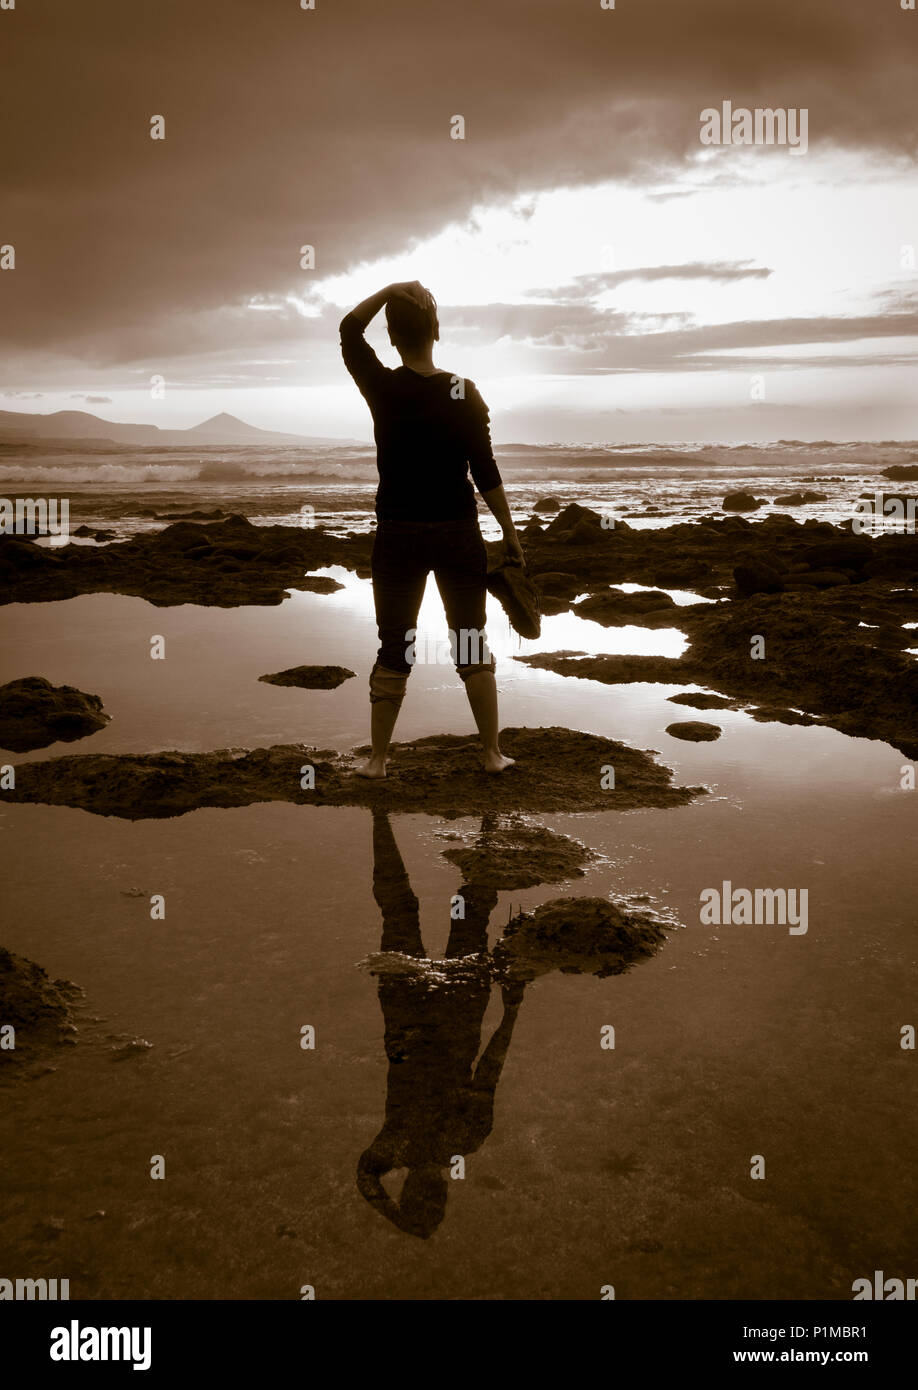 Rear view of woman holding shoes looking out to sea at sunset: meditation, mental health, loneliness, freedom, depression..concept image - Stock Image